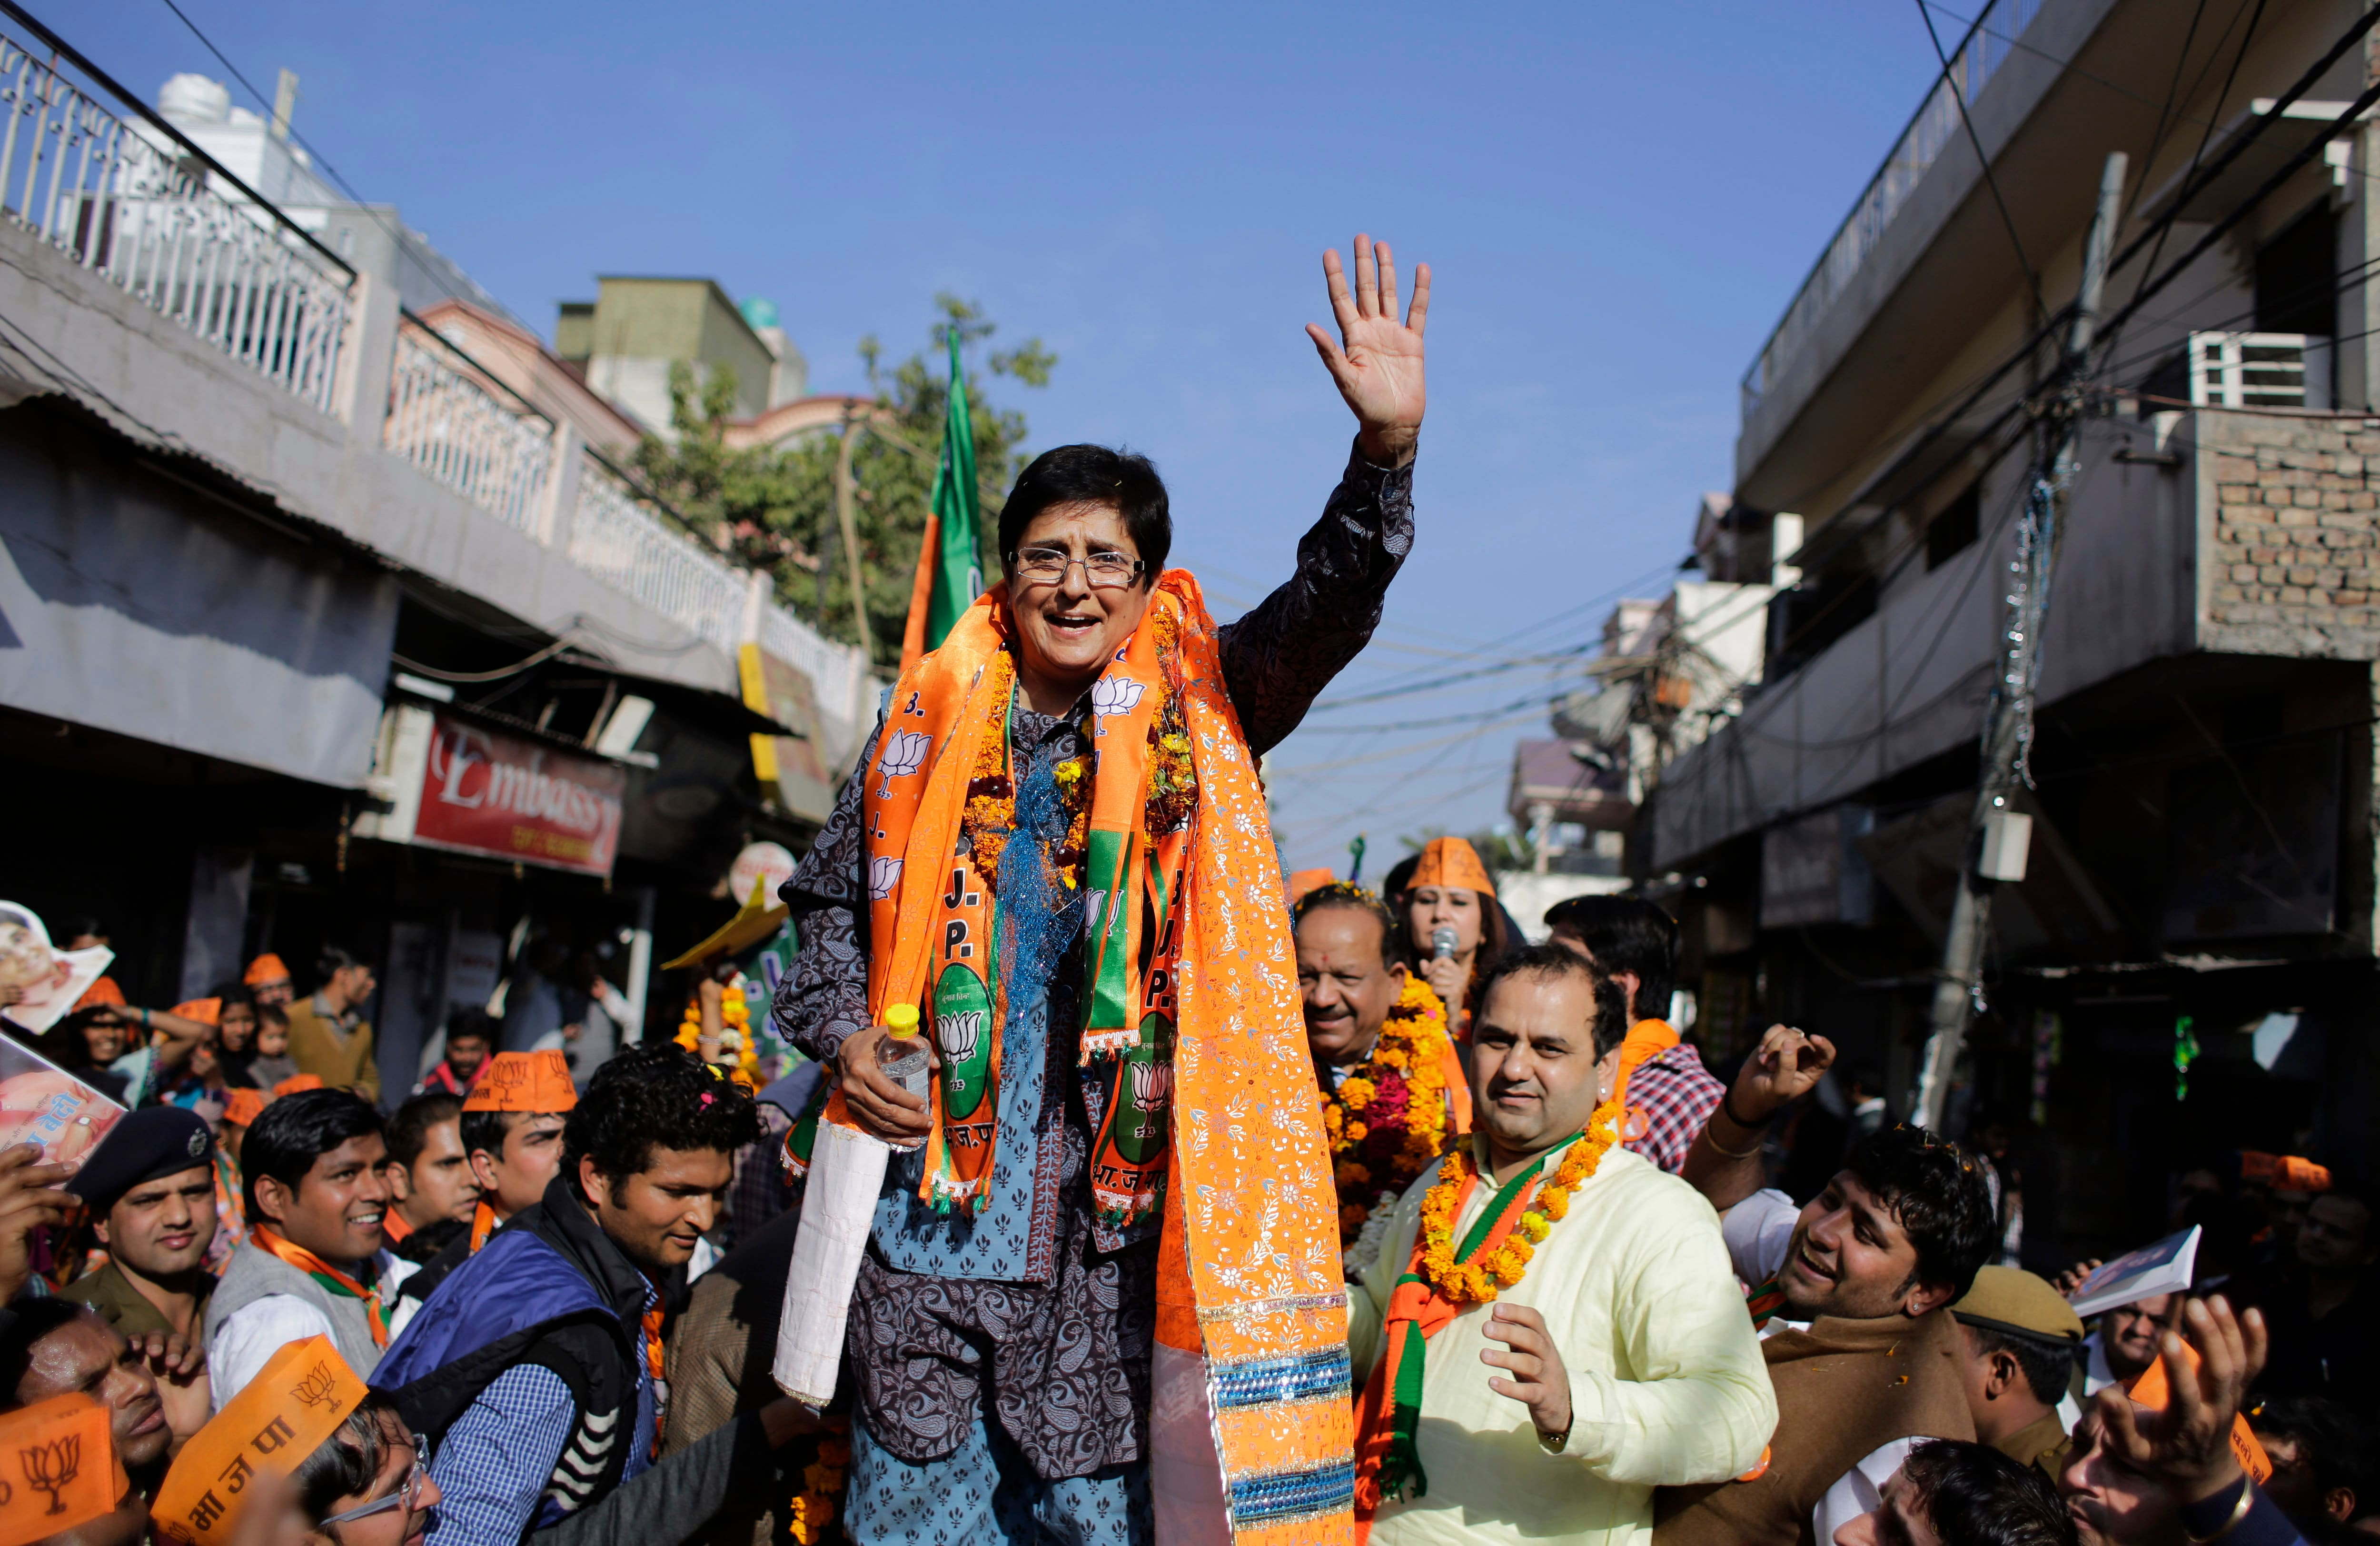 Bharatiya Janata Party (BJP) chief ministerial candidate Kiran Bedi waves to supporters during an election campaign rally ahead of Delhi state election in New Delhi.